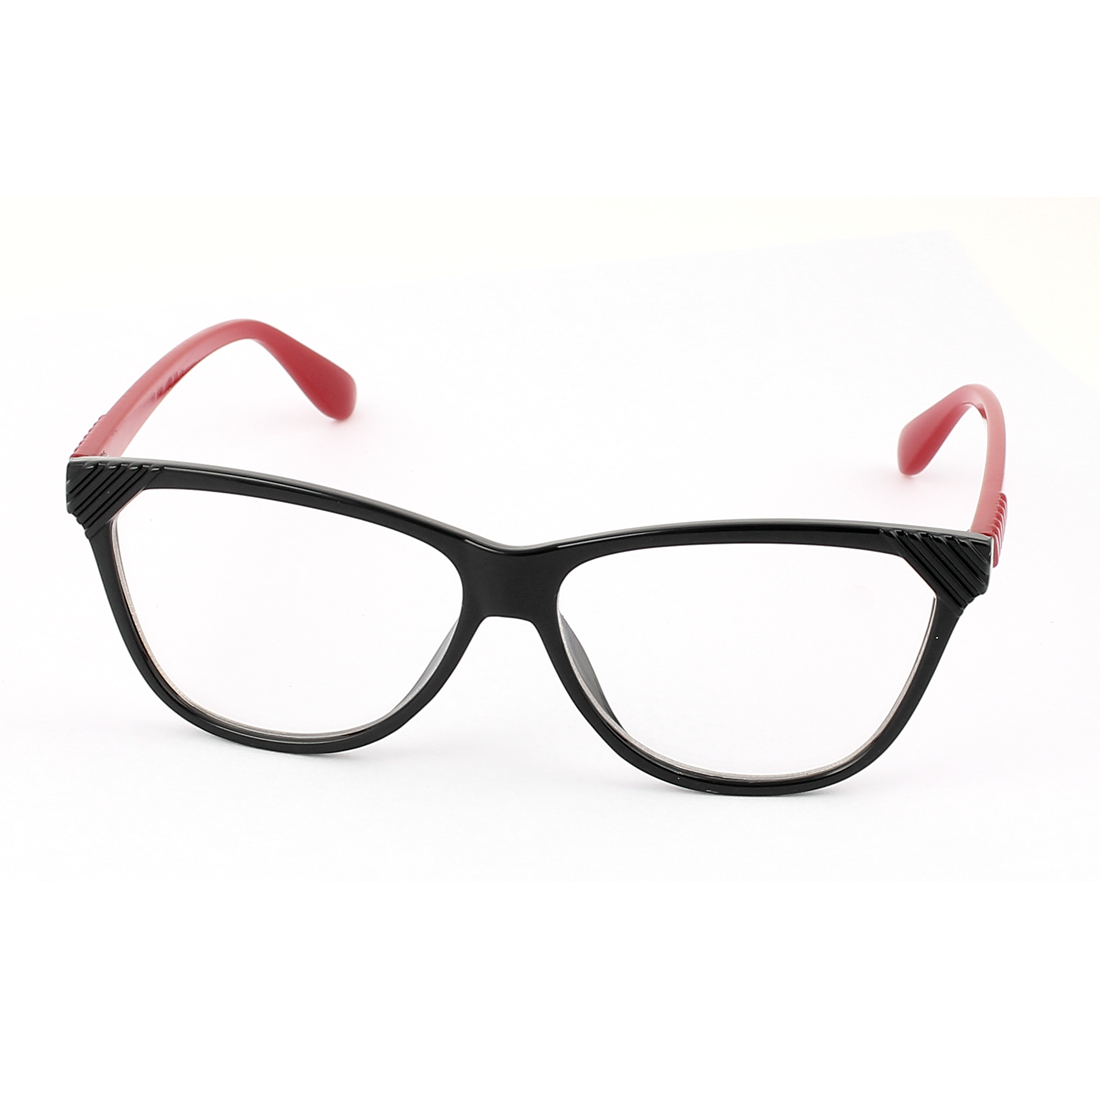 Plastic Arm Single Bridge Clear Lens Plain Glasses Eyeglasses Plano Spectacles Red